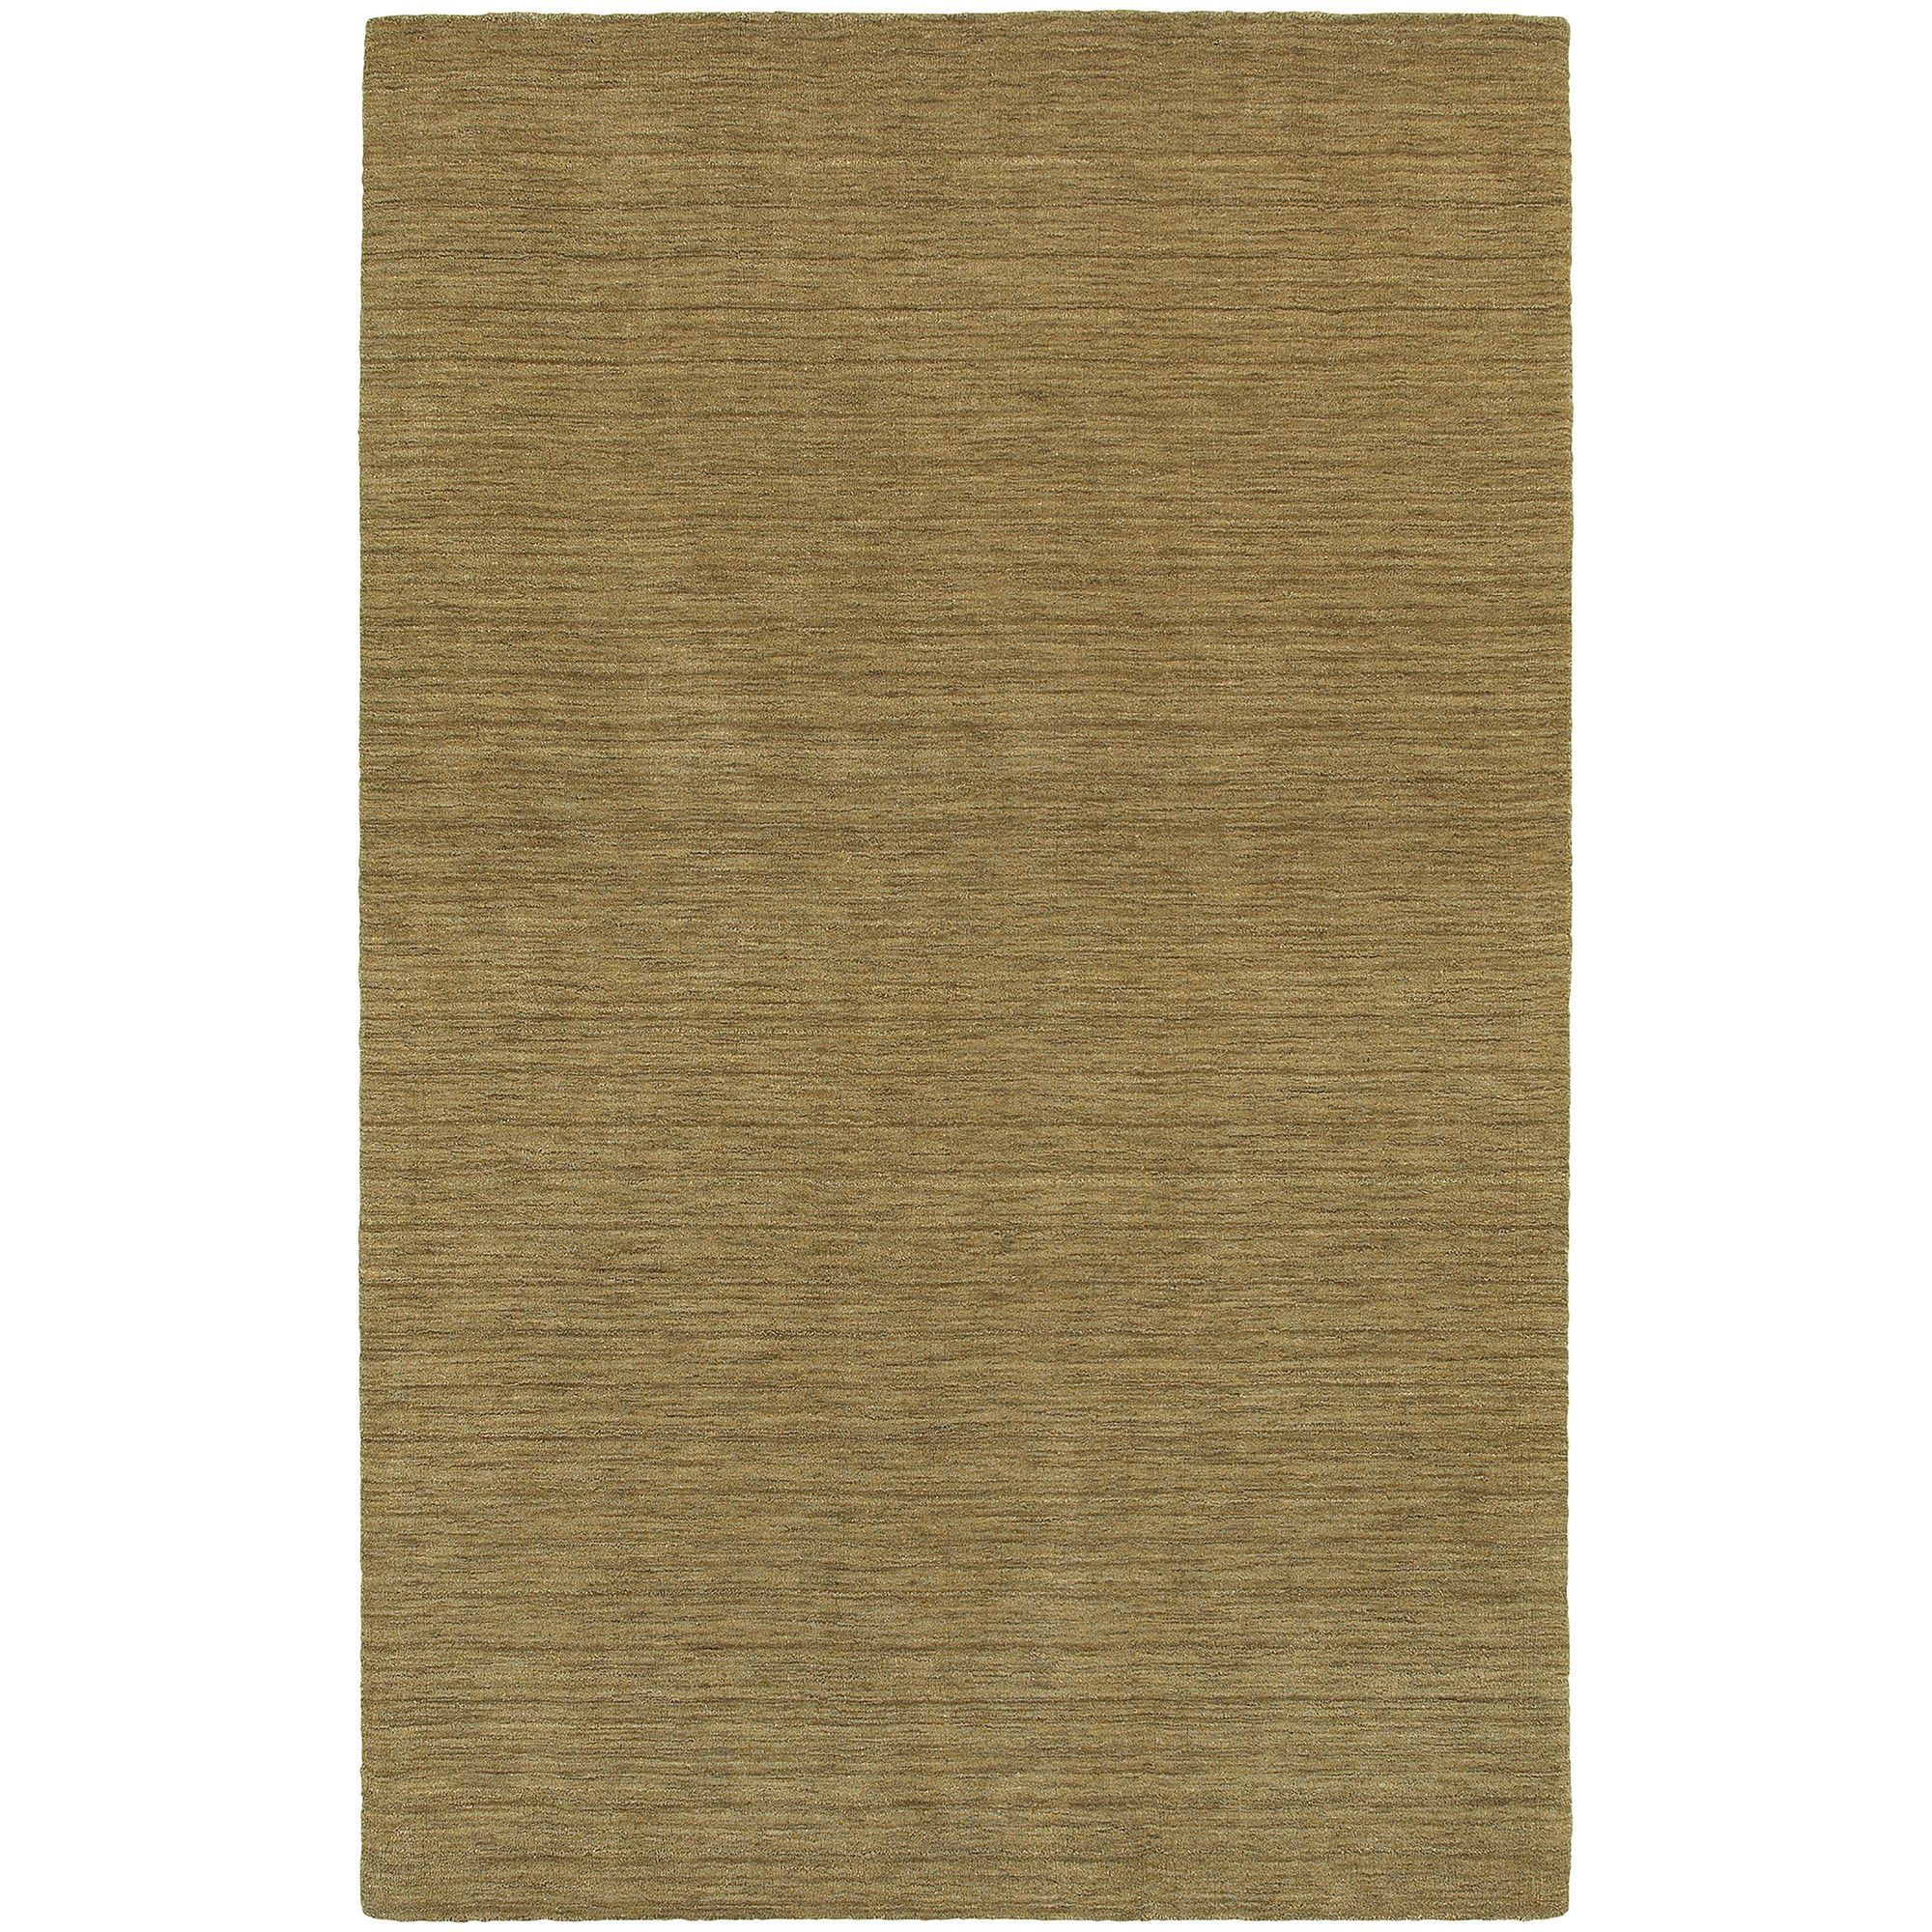 Chandler Hand Woven Heathered Gold Area Rug